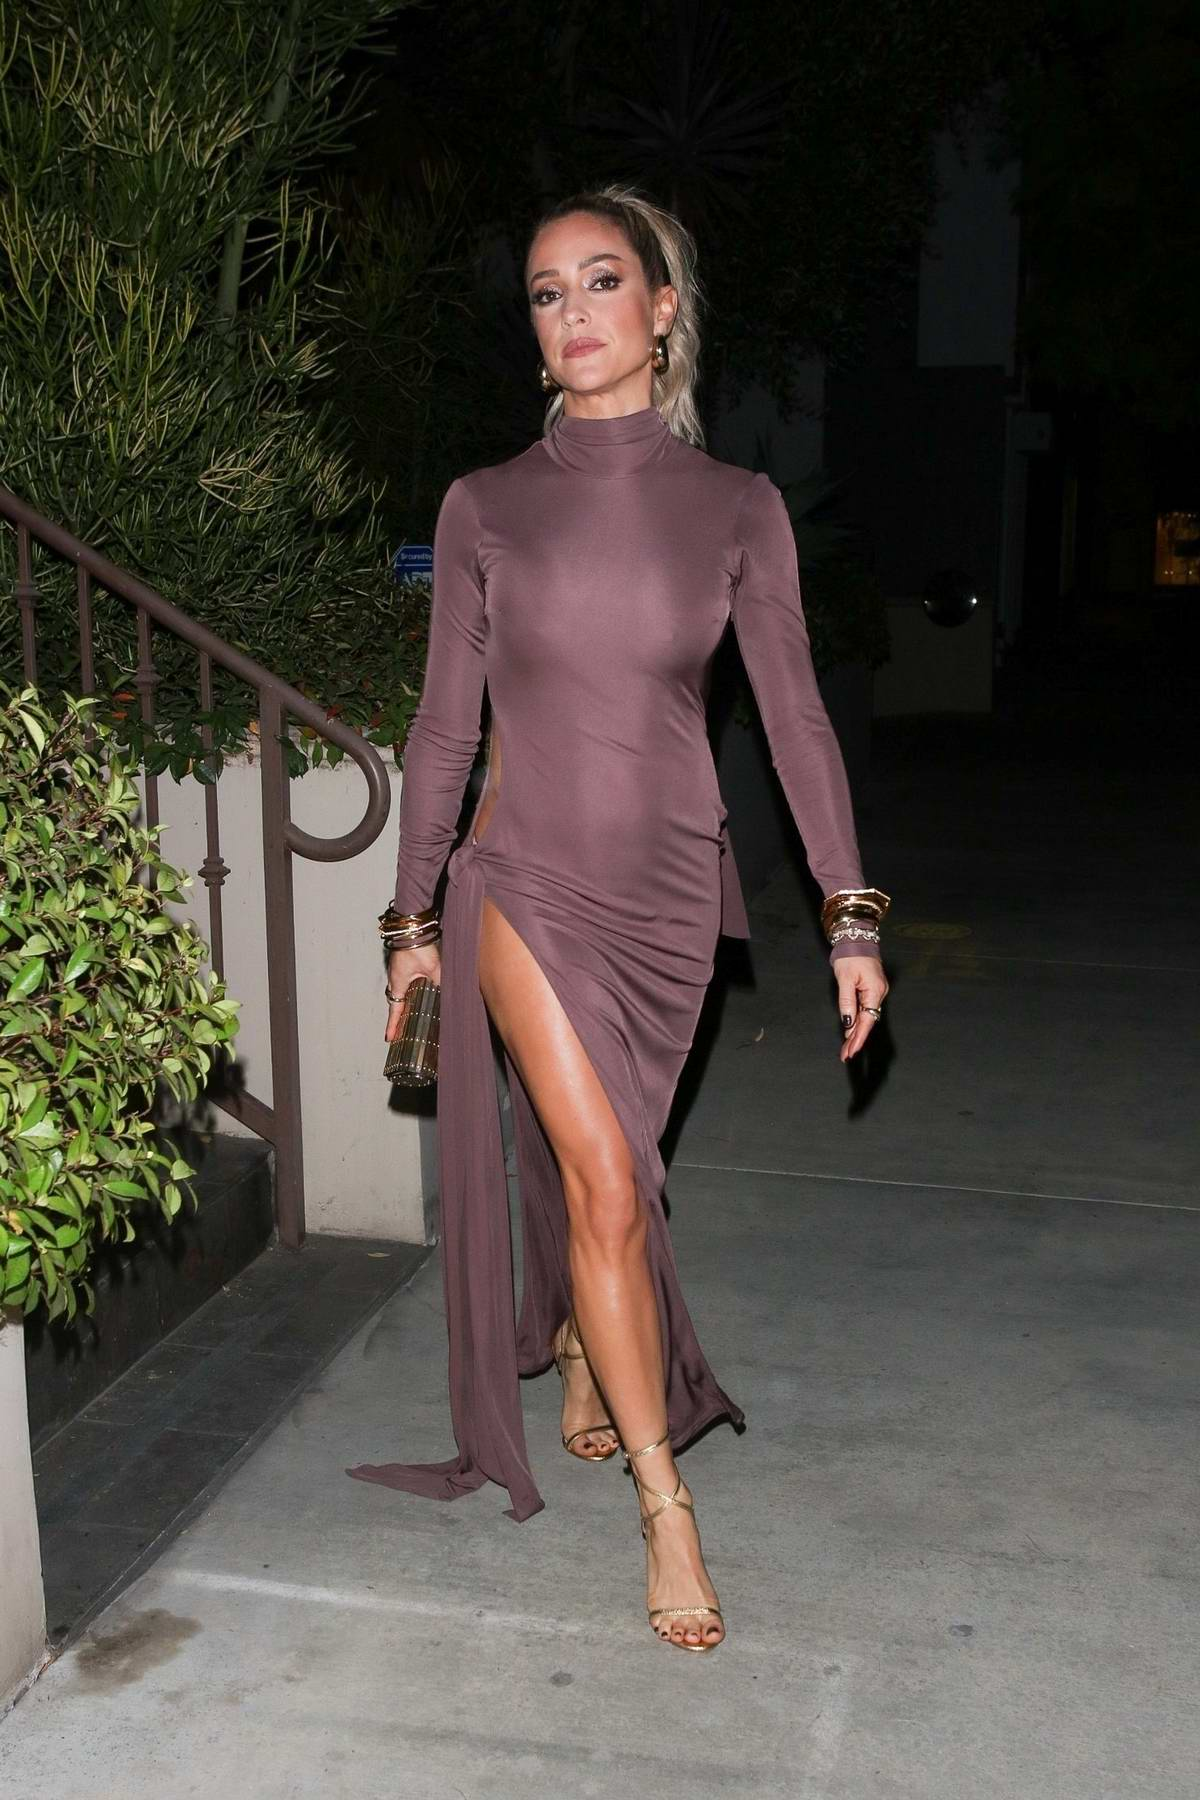 Kristin Cavallari flaunts her legs in a form-fitting dress while heading to the 2020 American Music Awards in Los Angeles